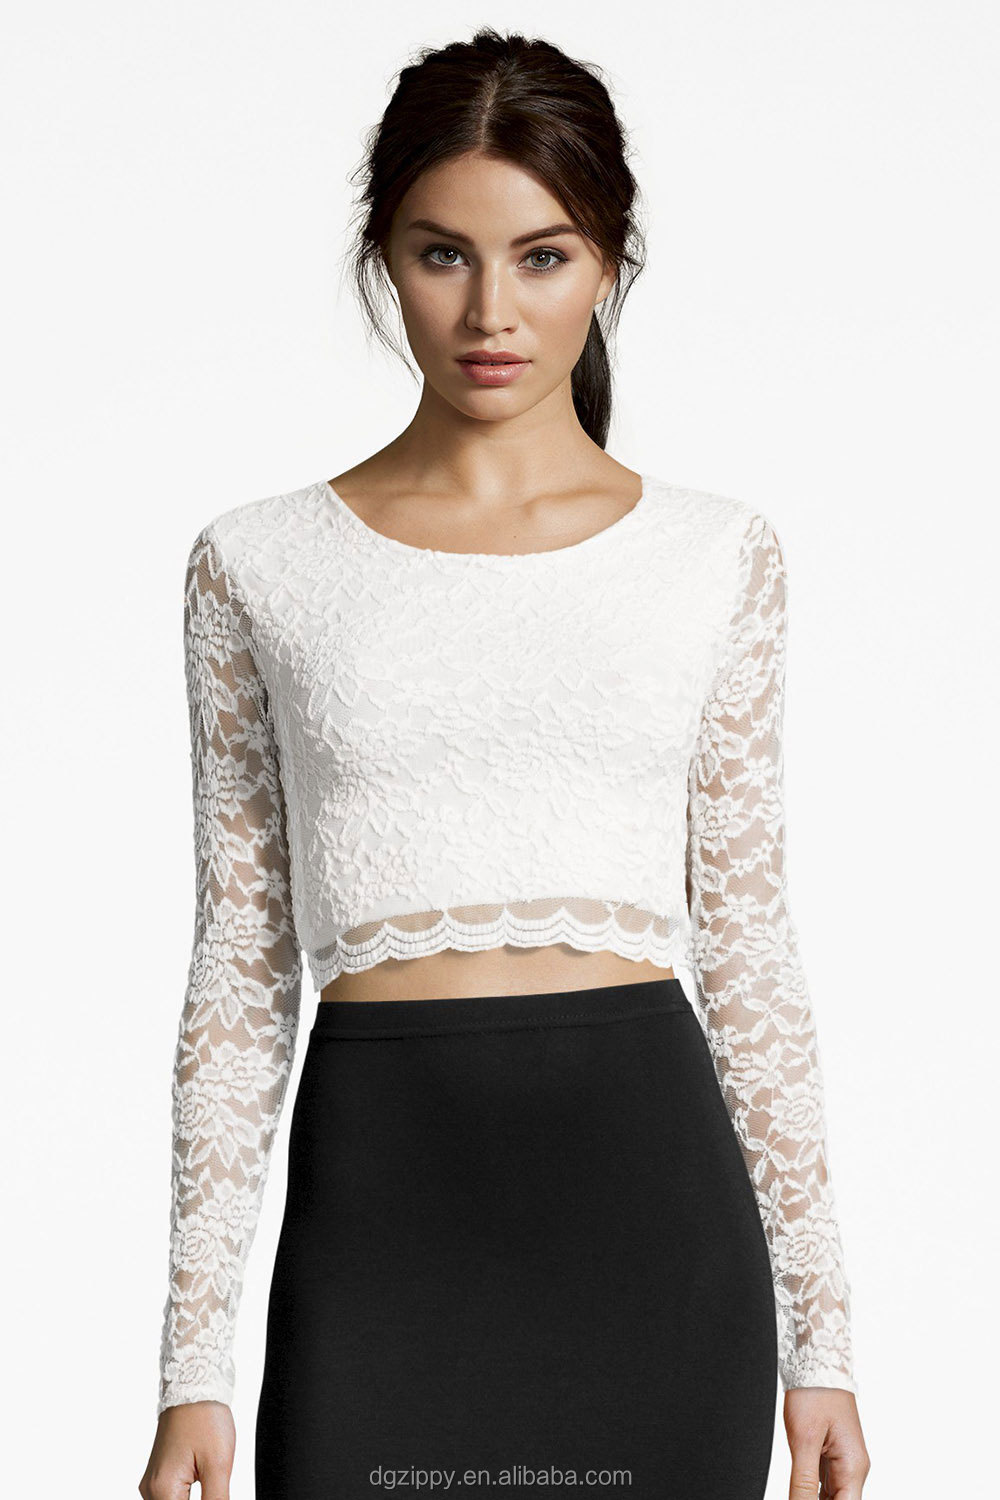 Buy the latest crop tops - plus size, black, white crop top outfits cheap shop fashion style with free shipping, and check out our daily updated new arrival crop tops at truemfilesb5q.gq Crop Top Sleeve Length: Long Sleeves Collar: Round Collar Style: Casual,Novelty I agree to receive marketing information about Rosegal products and services.